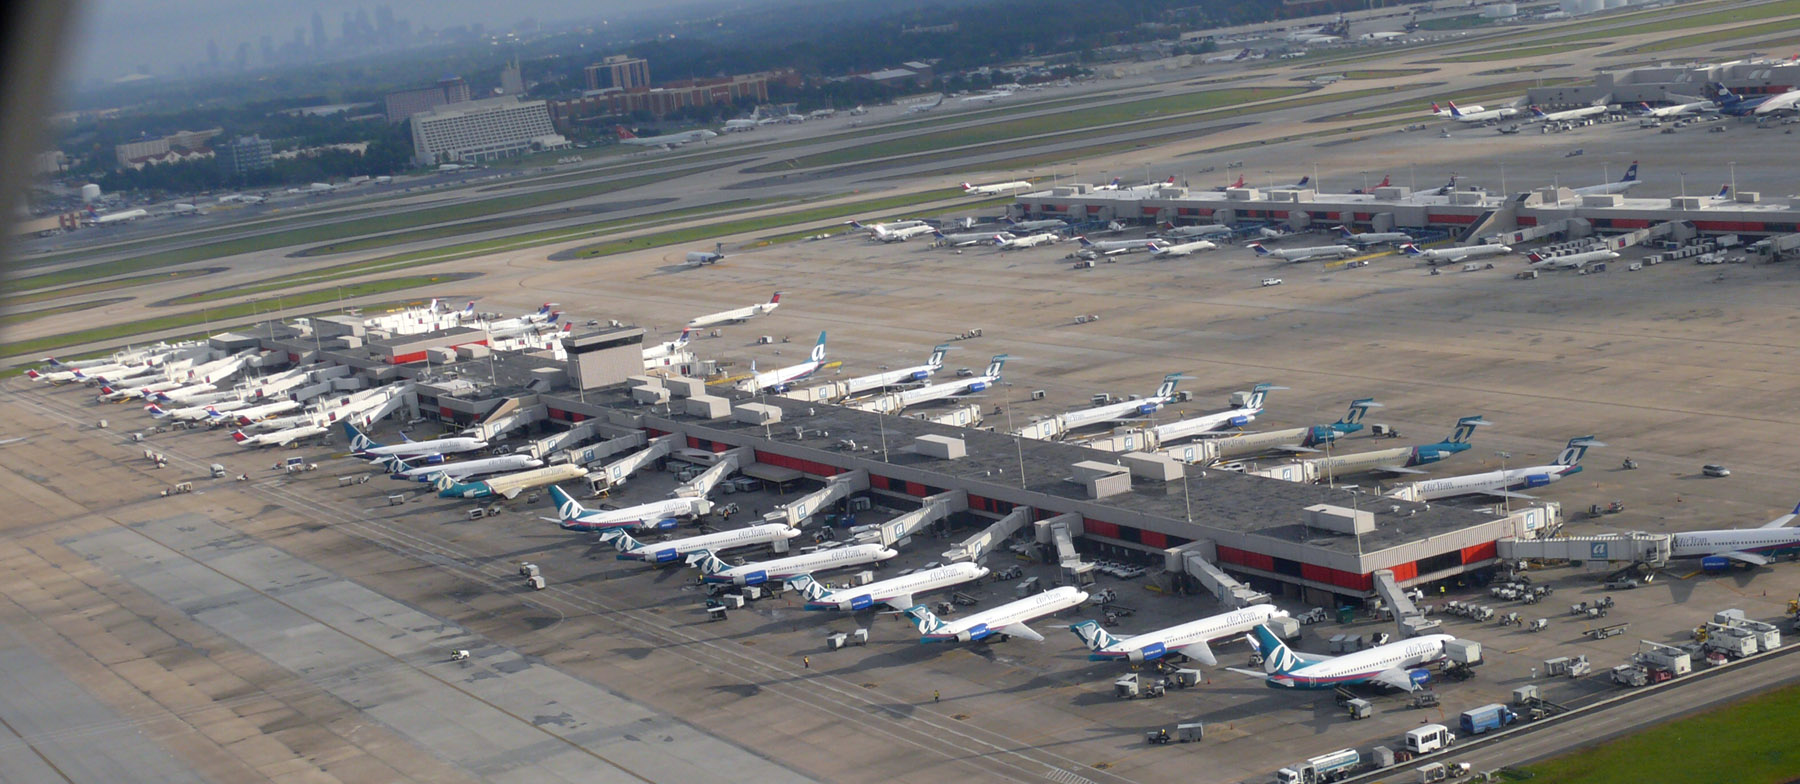 News What Are The Busiest Airports In The World